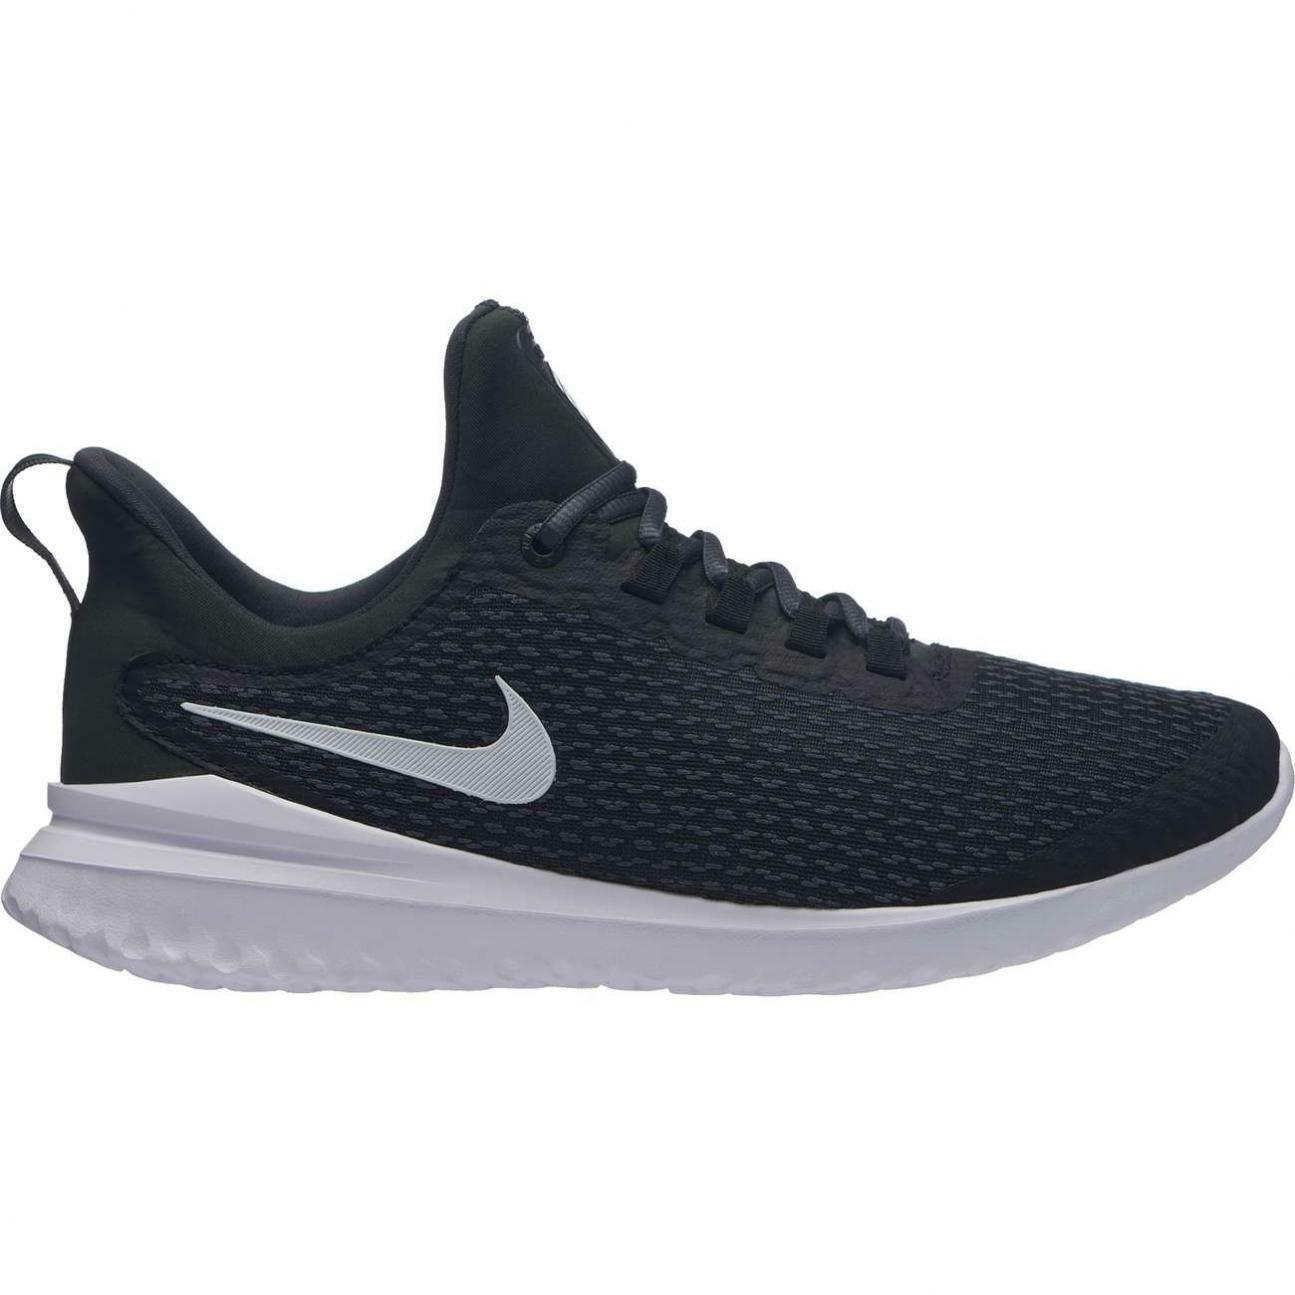 Authentic Nike Renew Rival Mens Running shoes (D) (001)